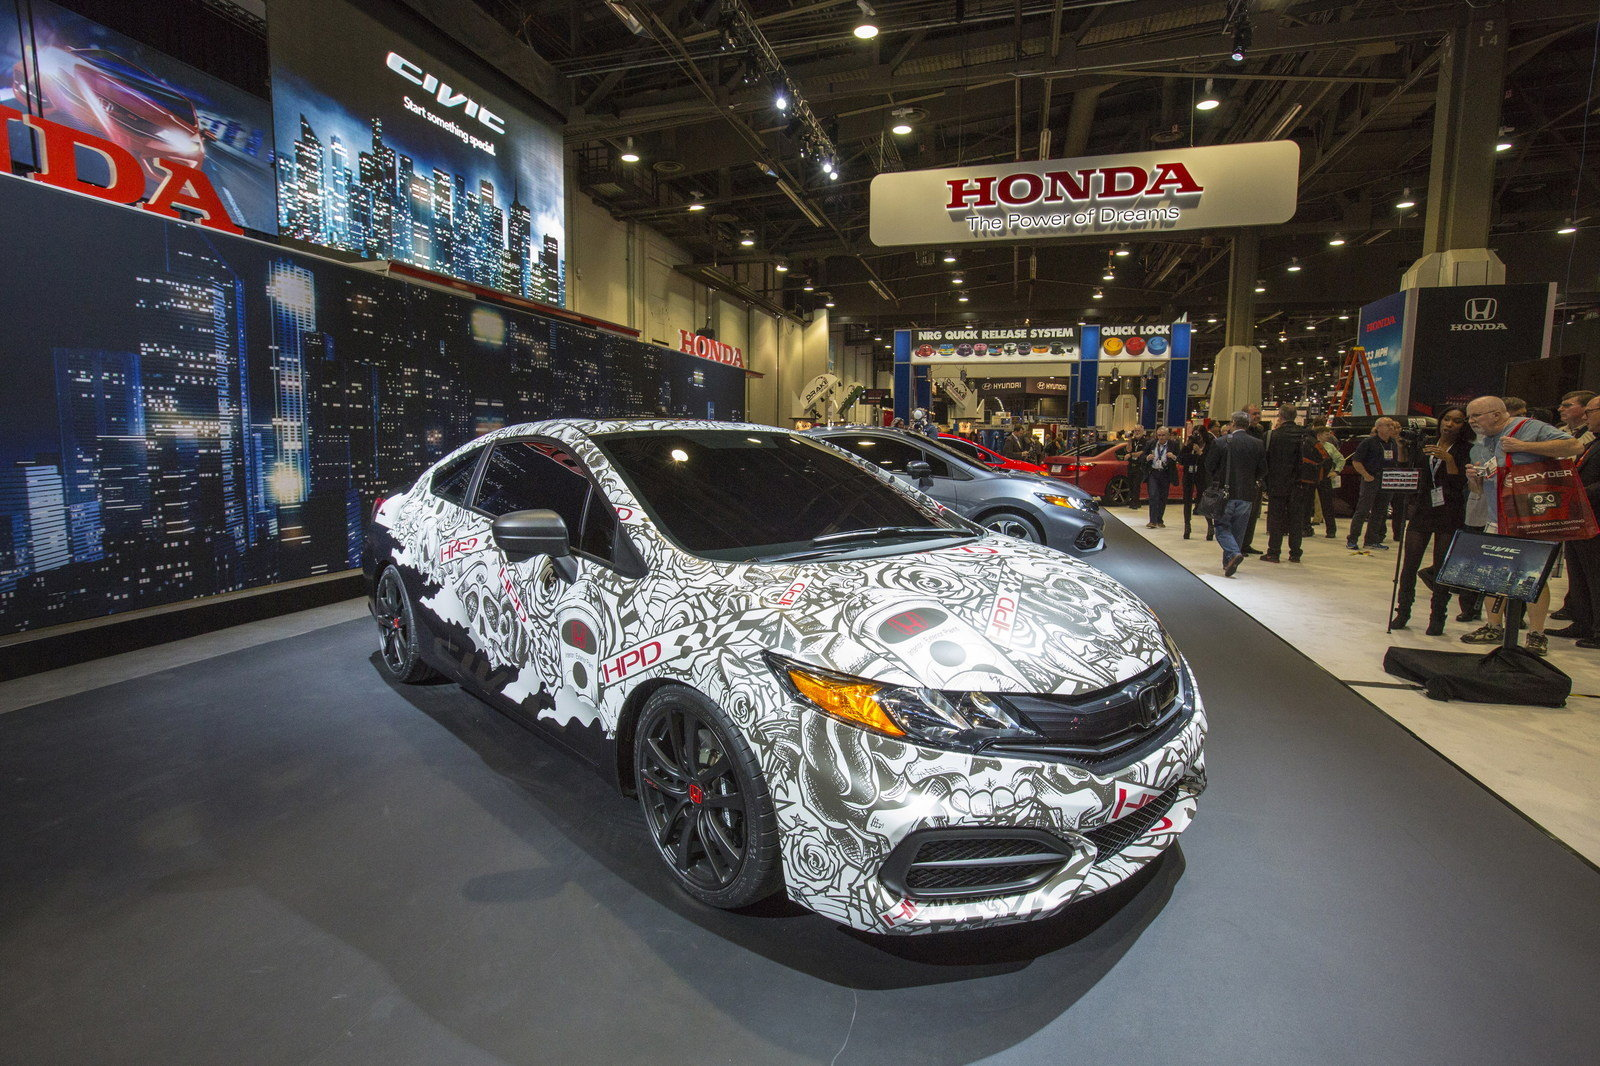 2014 Honda Hpd Civic Street Performance Concept Review